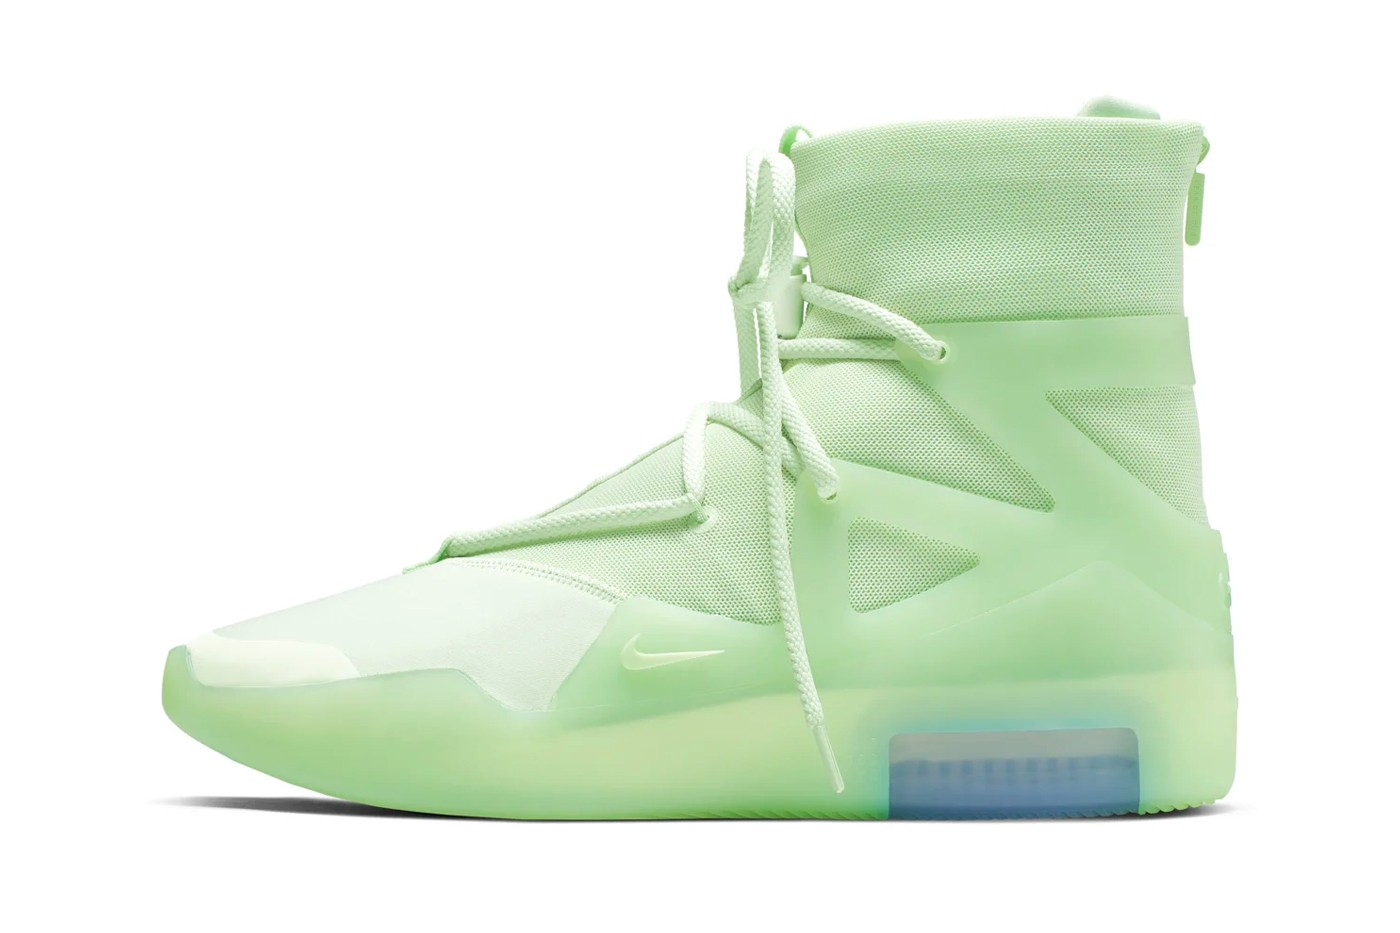 Nike Air Fear of God 1. Fotografía: Nike